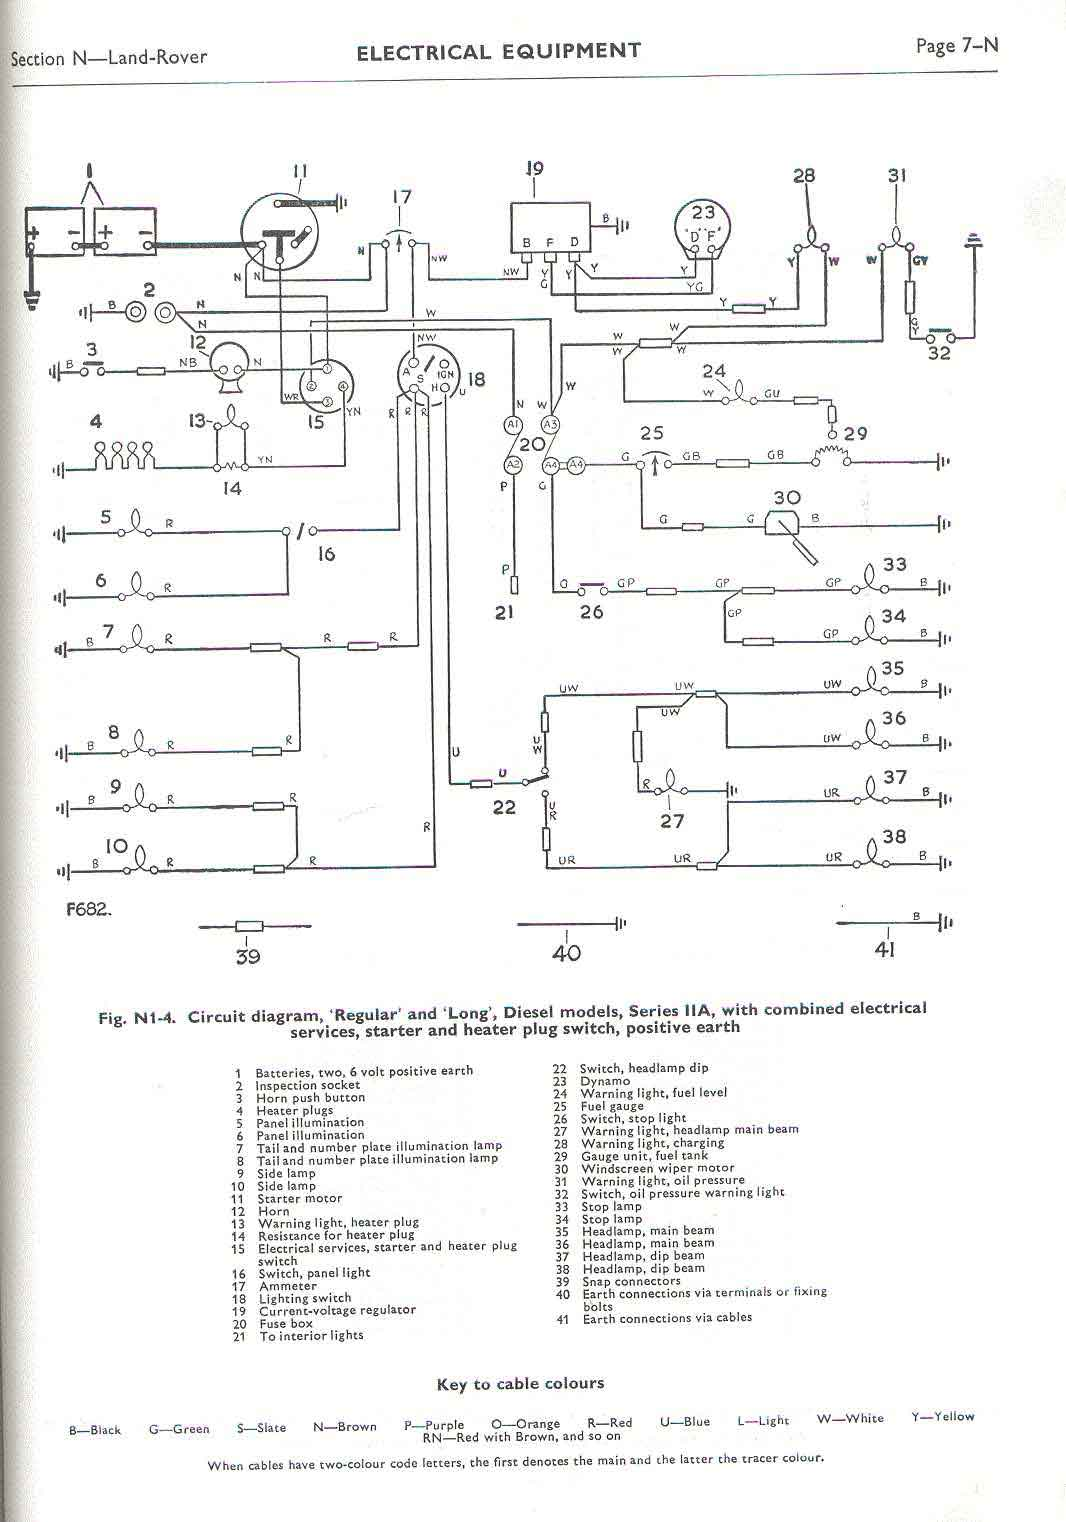 Land Rover Electrical Wiring Diagrams - Great Installation Of Wiring on land rover timing marks, land rover fuel system, land rover torque specs, land rover service manuals, land rover rear axle, land rover all models, land rover troubleshooting, land rover discovery, land rover brakes, land rover radio wiring, land rover dimensions, land rover exhaust, land rover braking system, land rover paint codes, land rover belt routing, land rover tools, range rover wiring diagrams, land rover water pump replacement, land rover schematics, land rover engine,